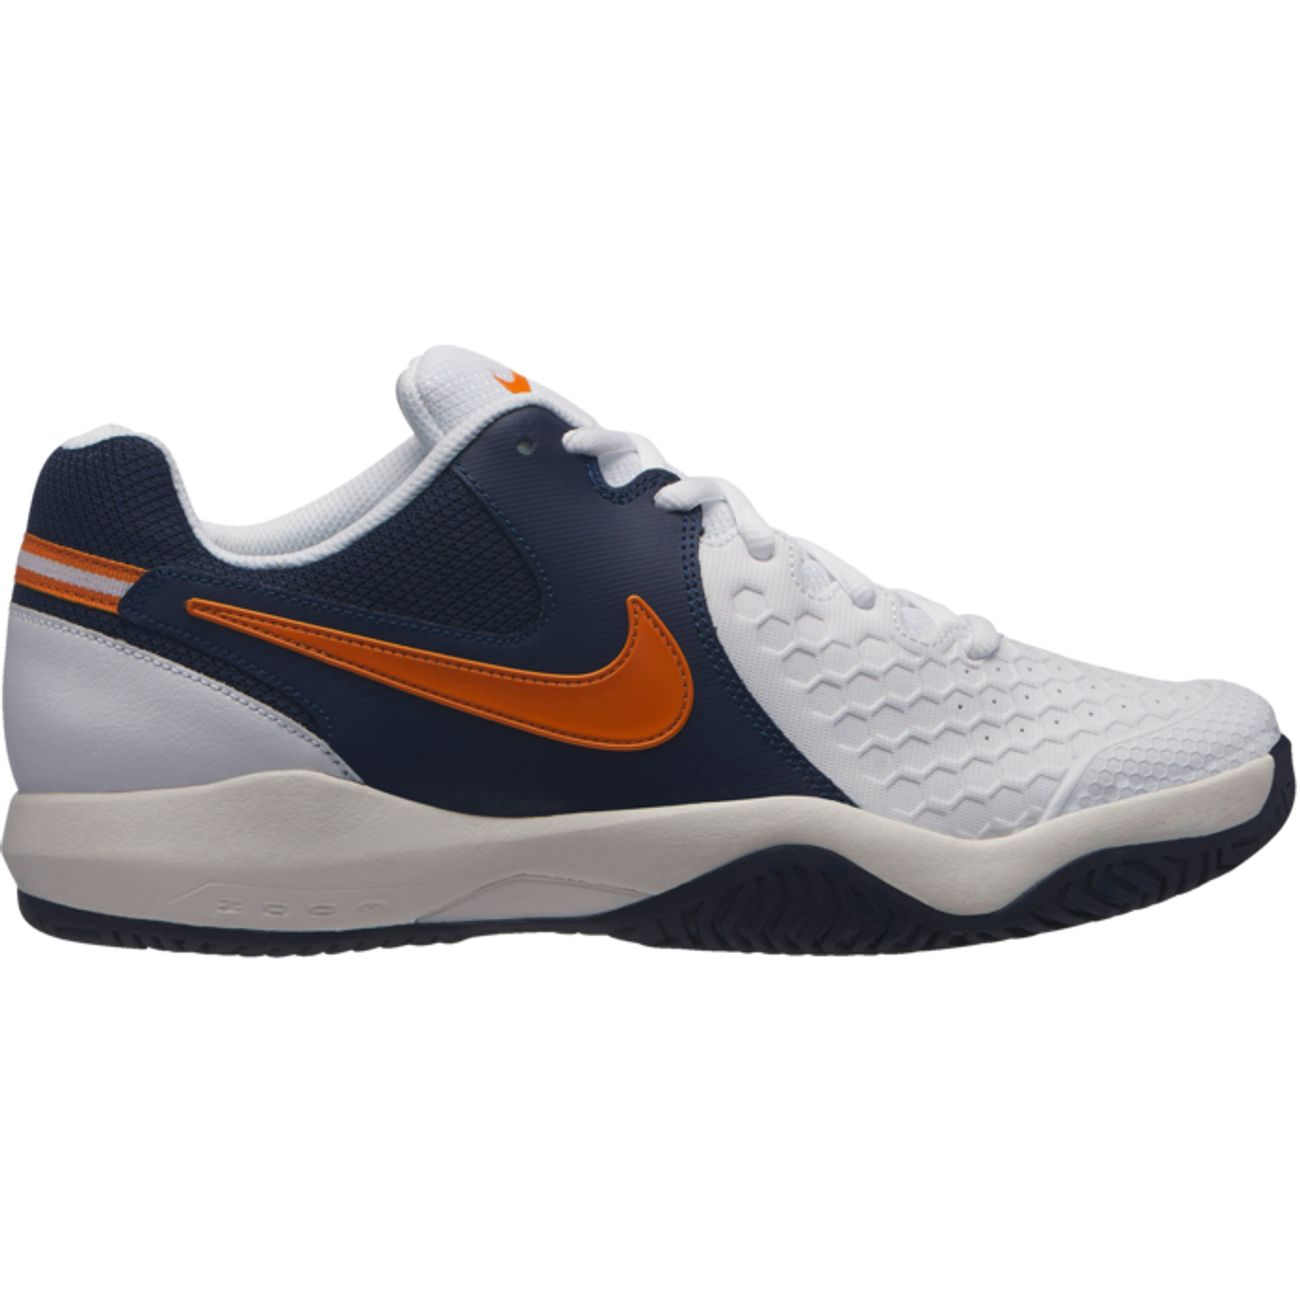 separation shoes 6d736 5b421 CHAUSSURES BASSES Tennis homme NIKE NIKE AIR ZOOM RESISTANCE ...